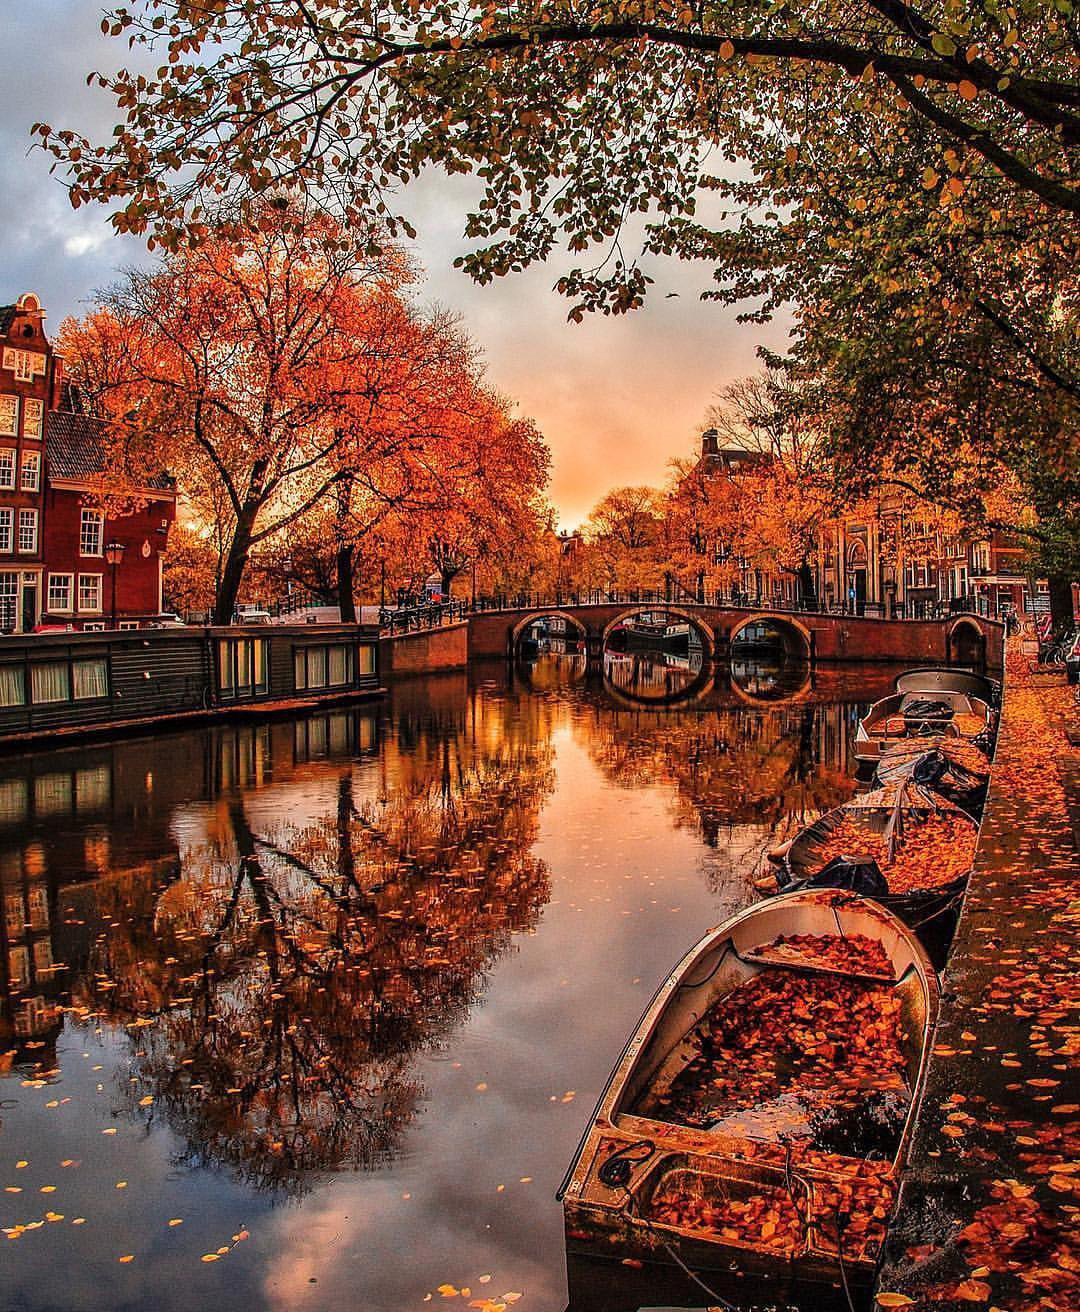 Amsterdam in the Fall